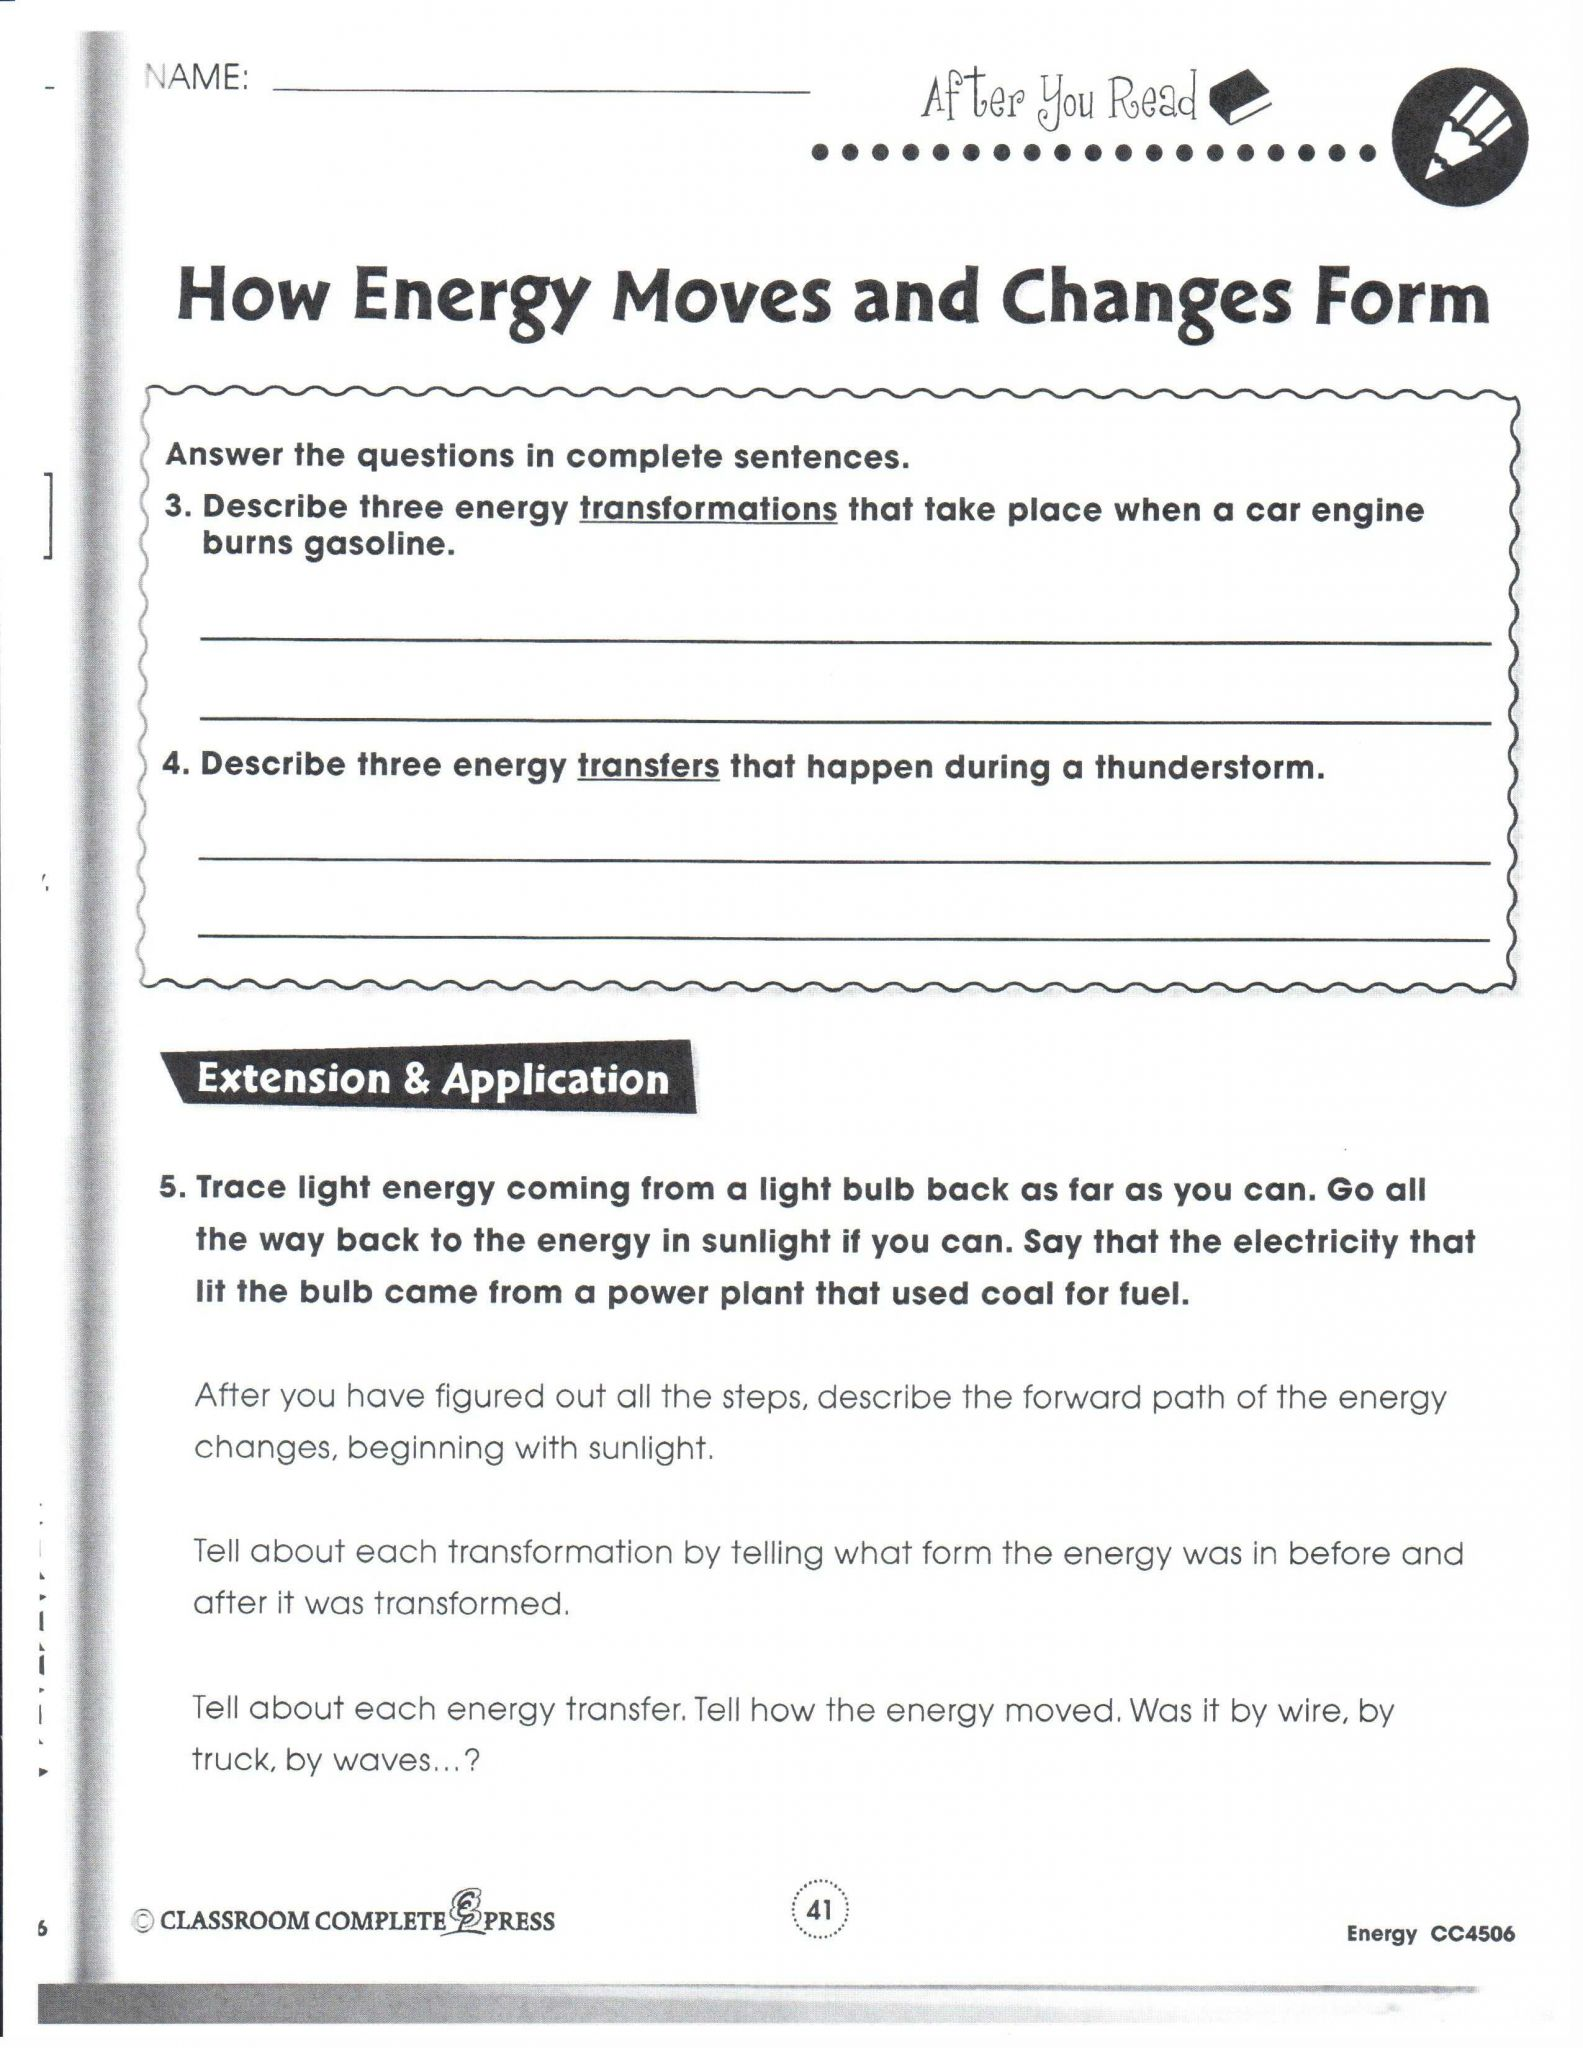 Energy Transformation Worksheet Answers Also Energy Transformation Worksheet Answers New Physical Science January